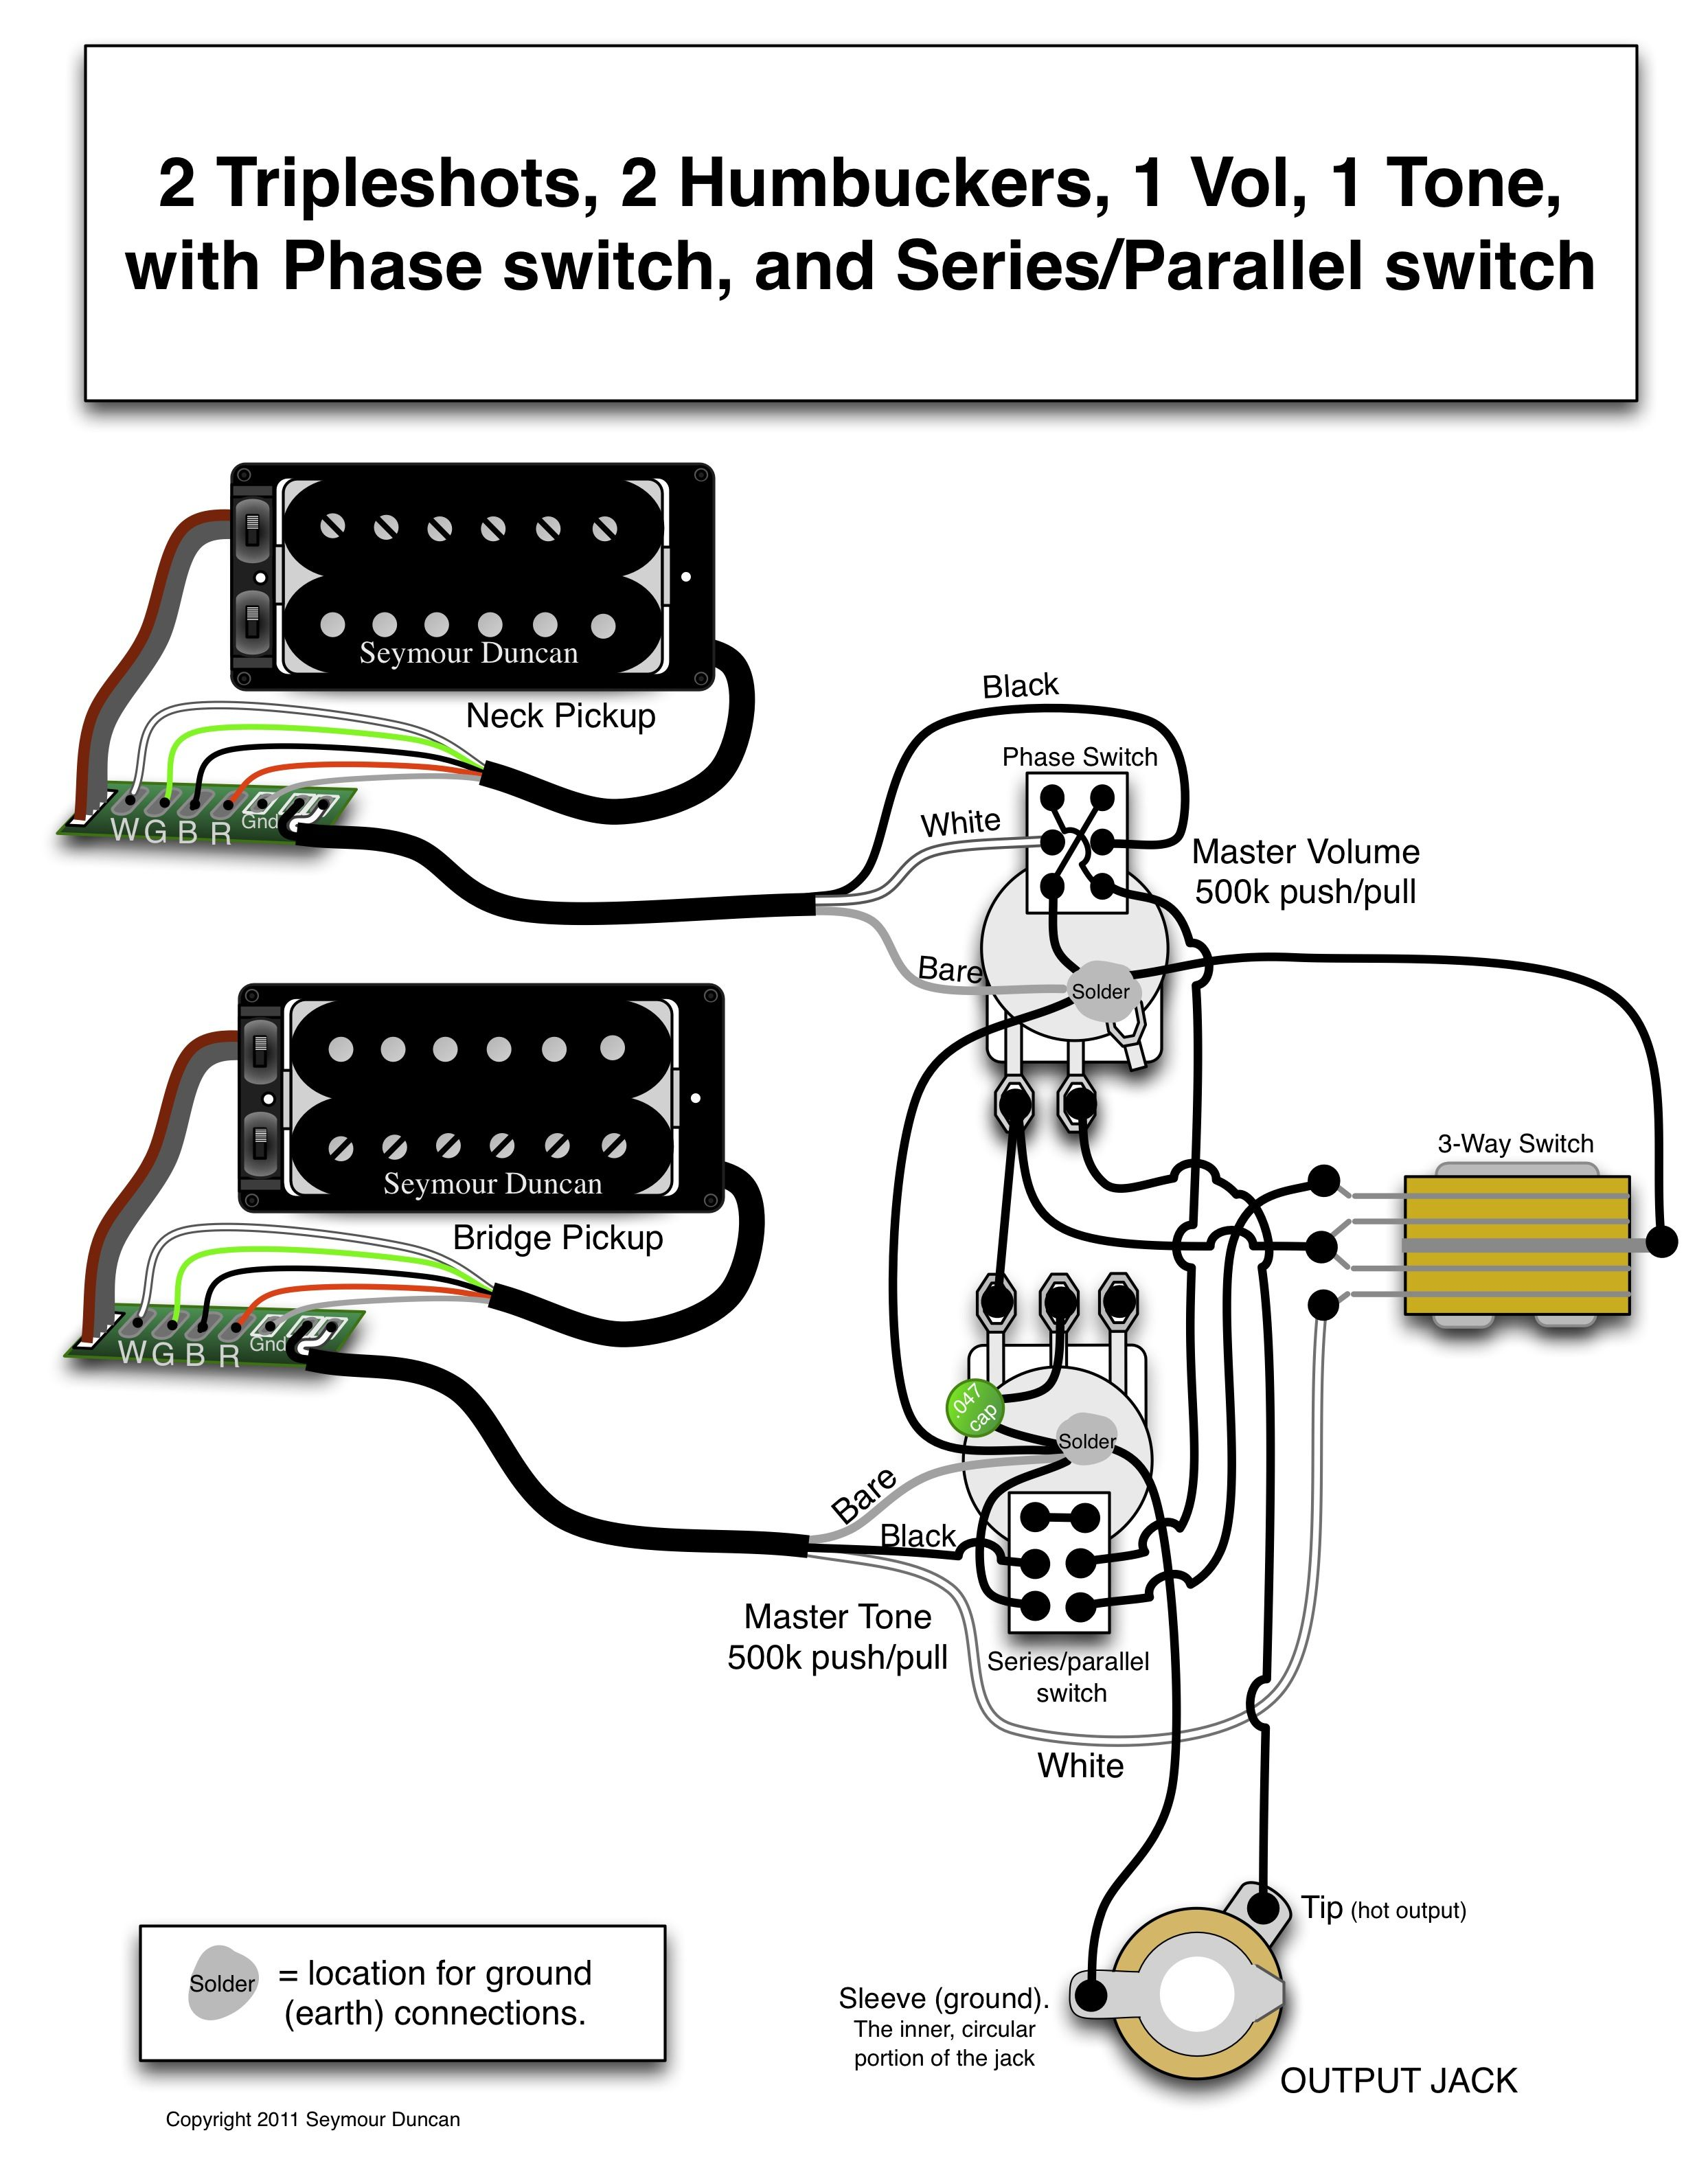 Seymour duncan wiring diagram 2 triple shots 2 humbuckers 1 vol seymour duncan wiring diagram 2 triple shots 2 humbuckers 1 vol with phase switch 1 tone with seriesparallel switch cheapraybanclubmaster